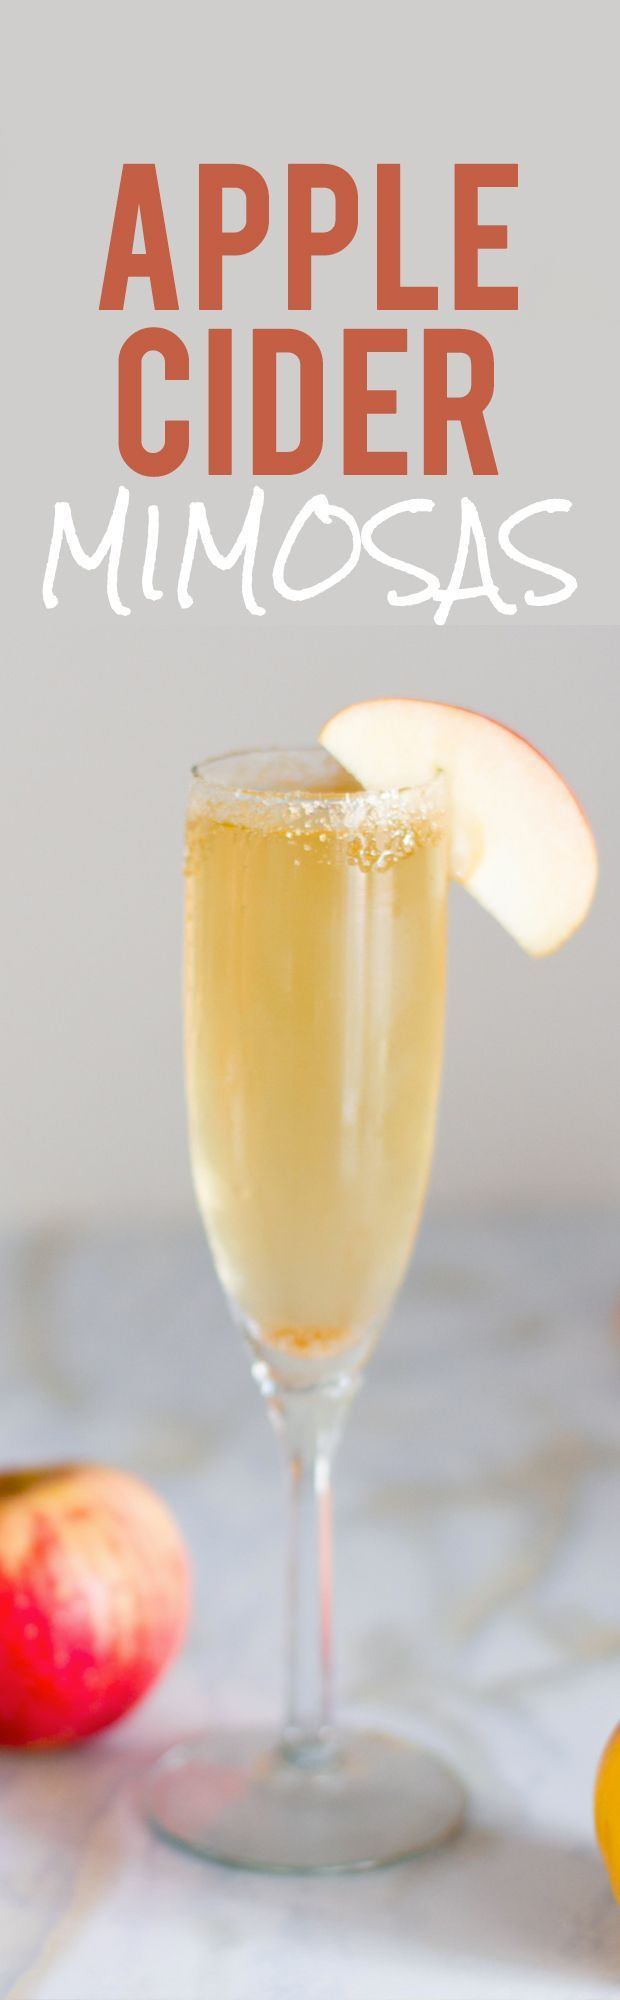 Heres a great Mimosa Drink Recipe for the New years Holiday! back To Her Root